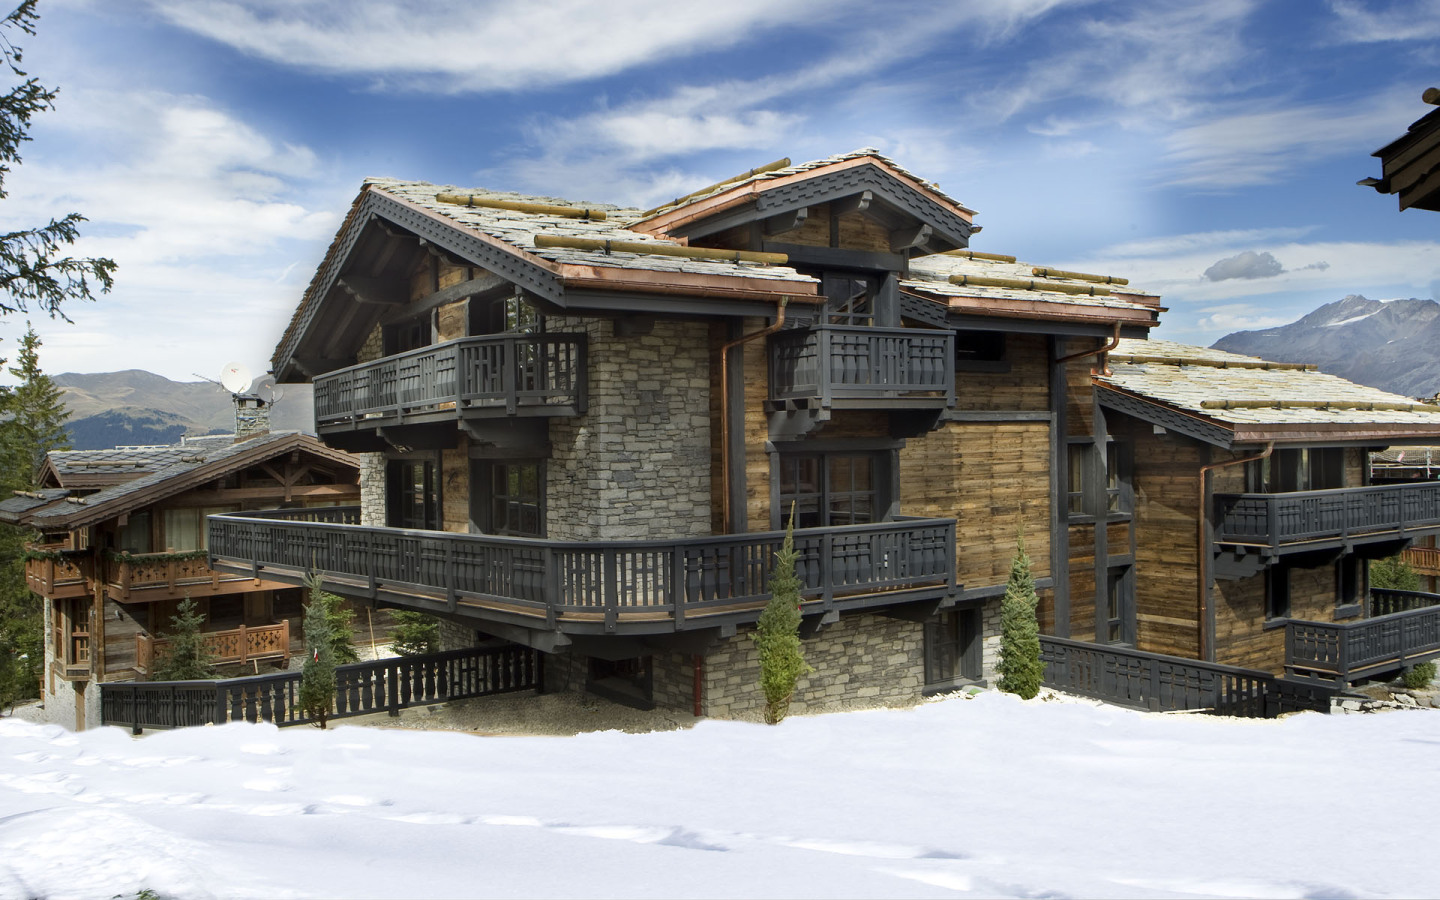 Luxury Chalet Courchevel 1850 France -Edelweiss 1